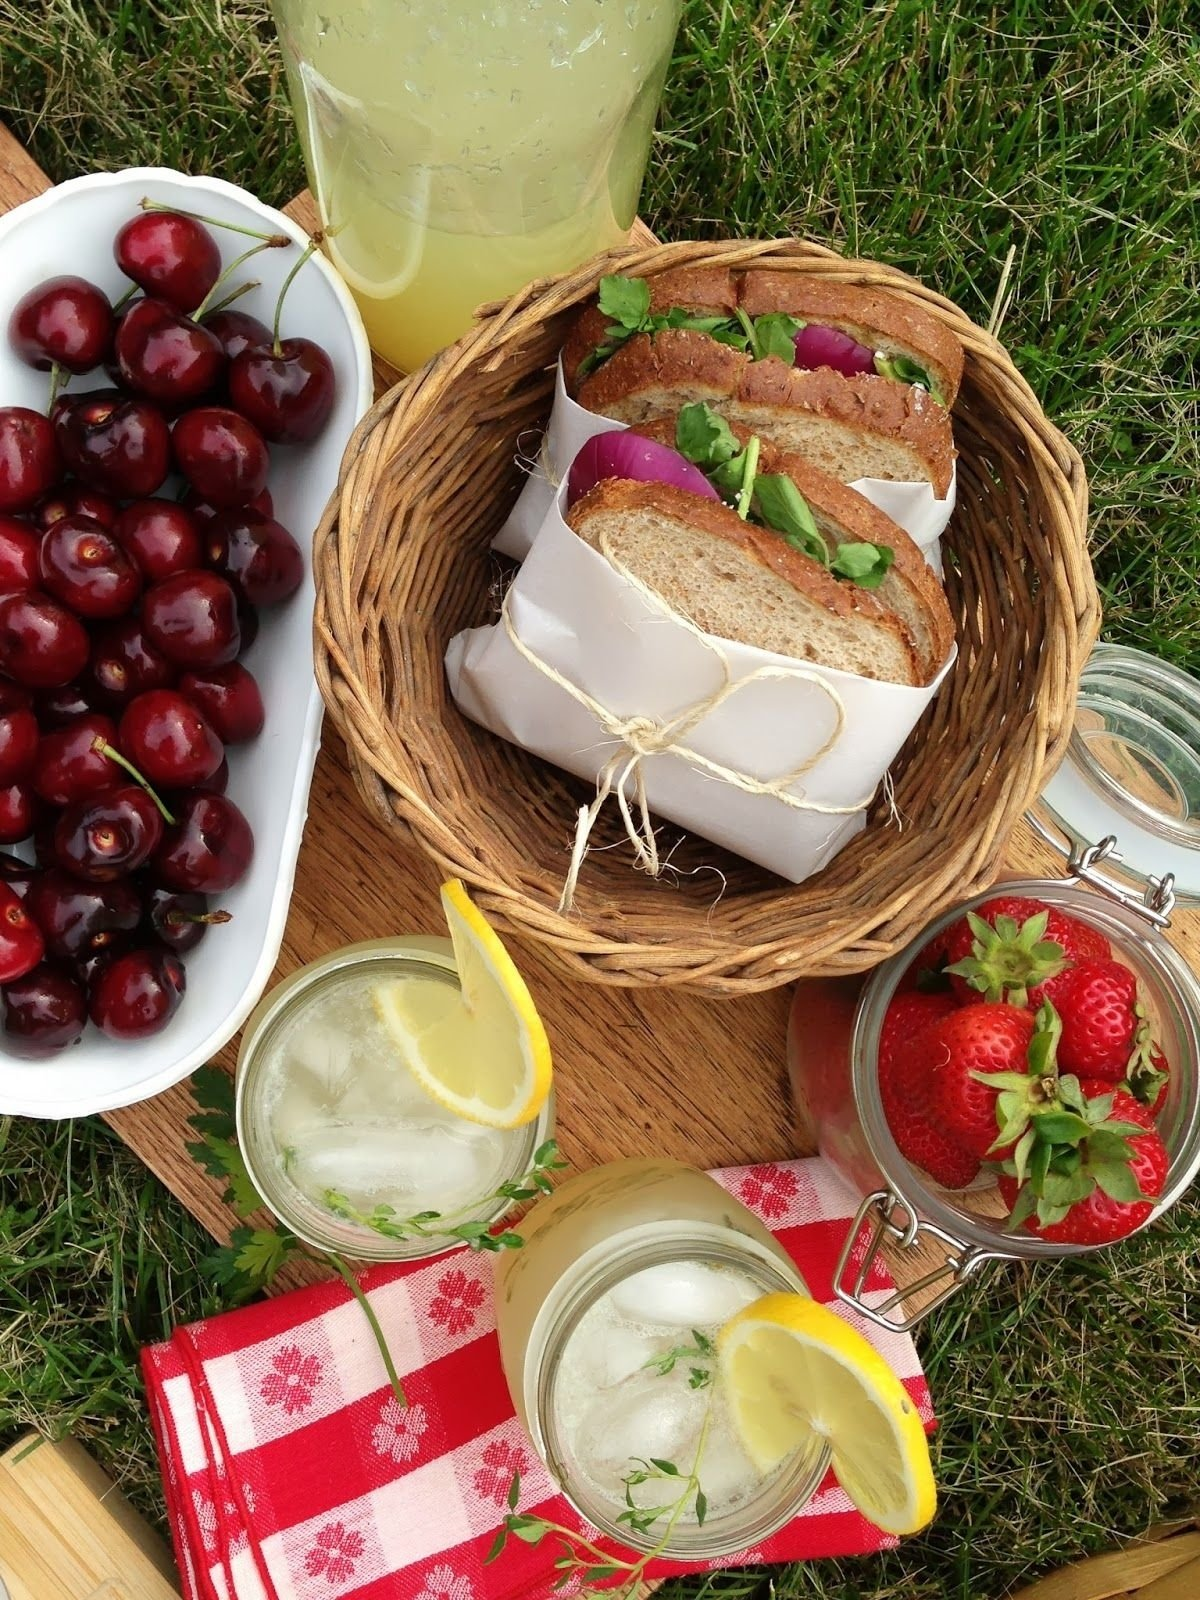 10 Beautiful Picnic Food Ideas For Couples intrinsic beauty entertaining picnic for two date ideas 1 2021